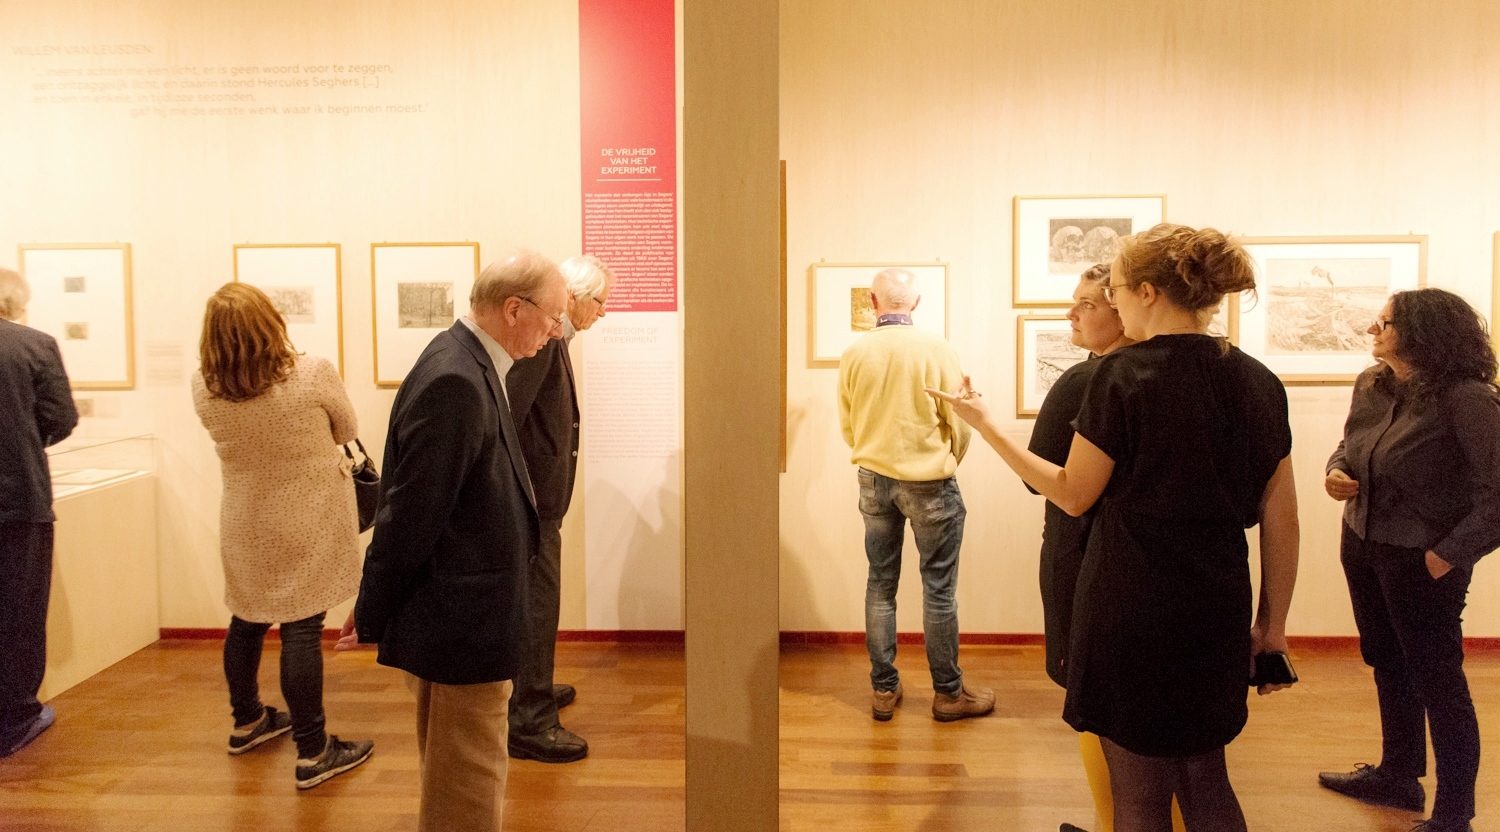 opening-rembrandthuis-071016-low-res-38